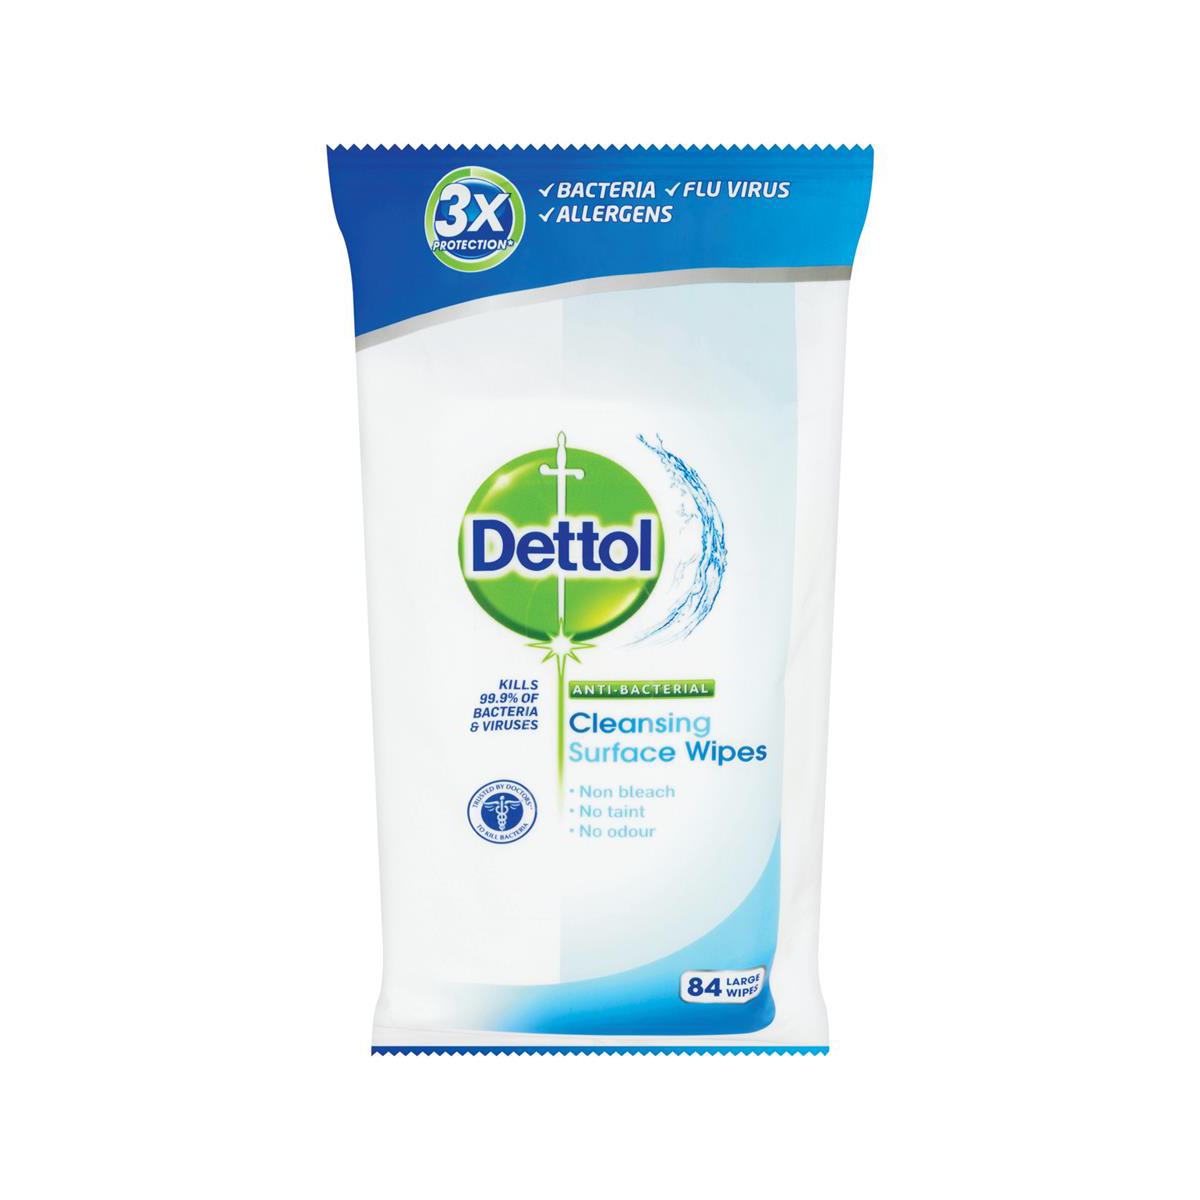 Dettol Antibac Clean Wipes BOGOF Jul6/18 December Deal